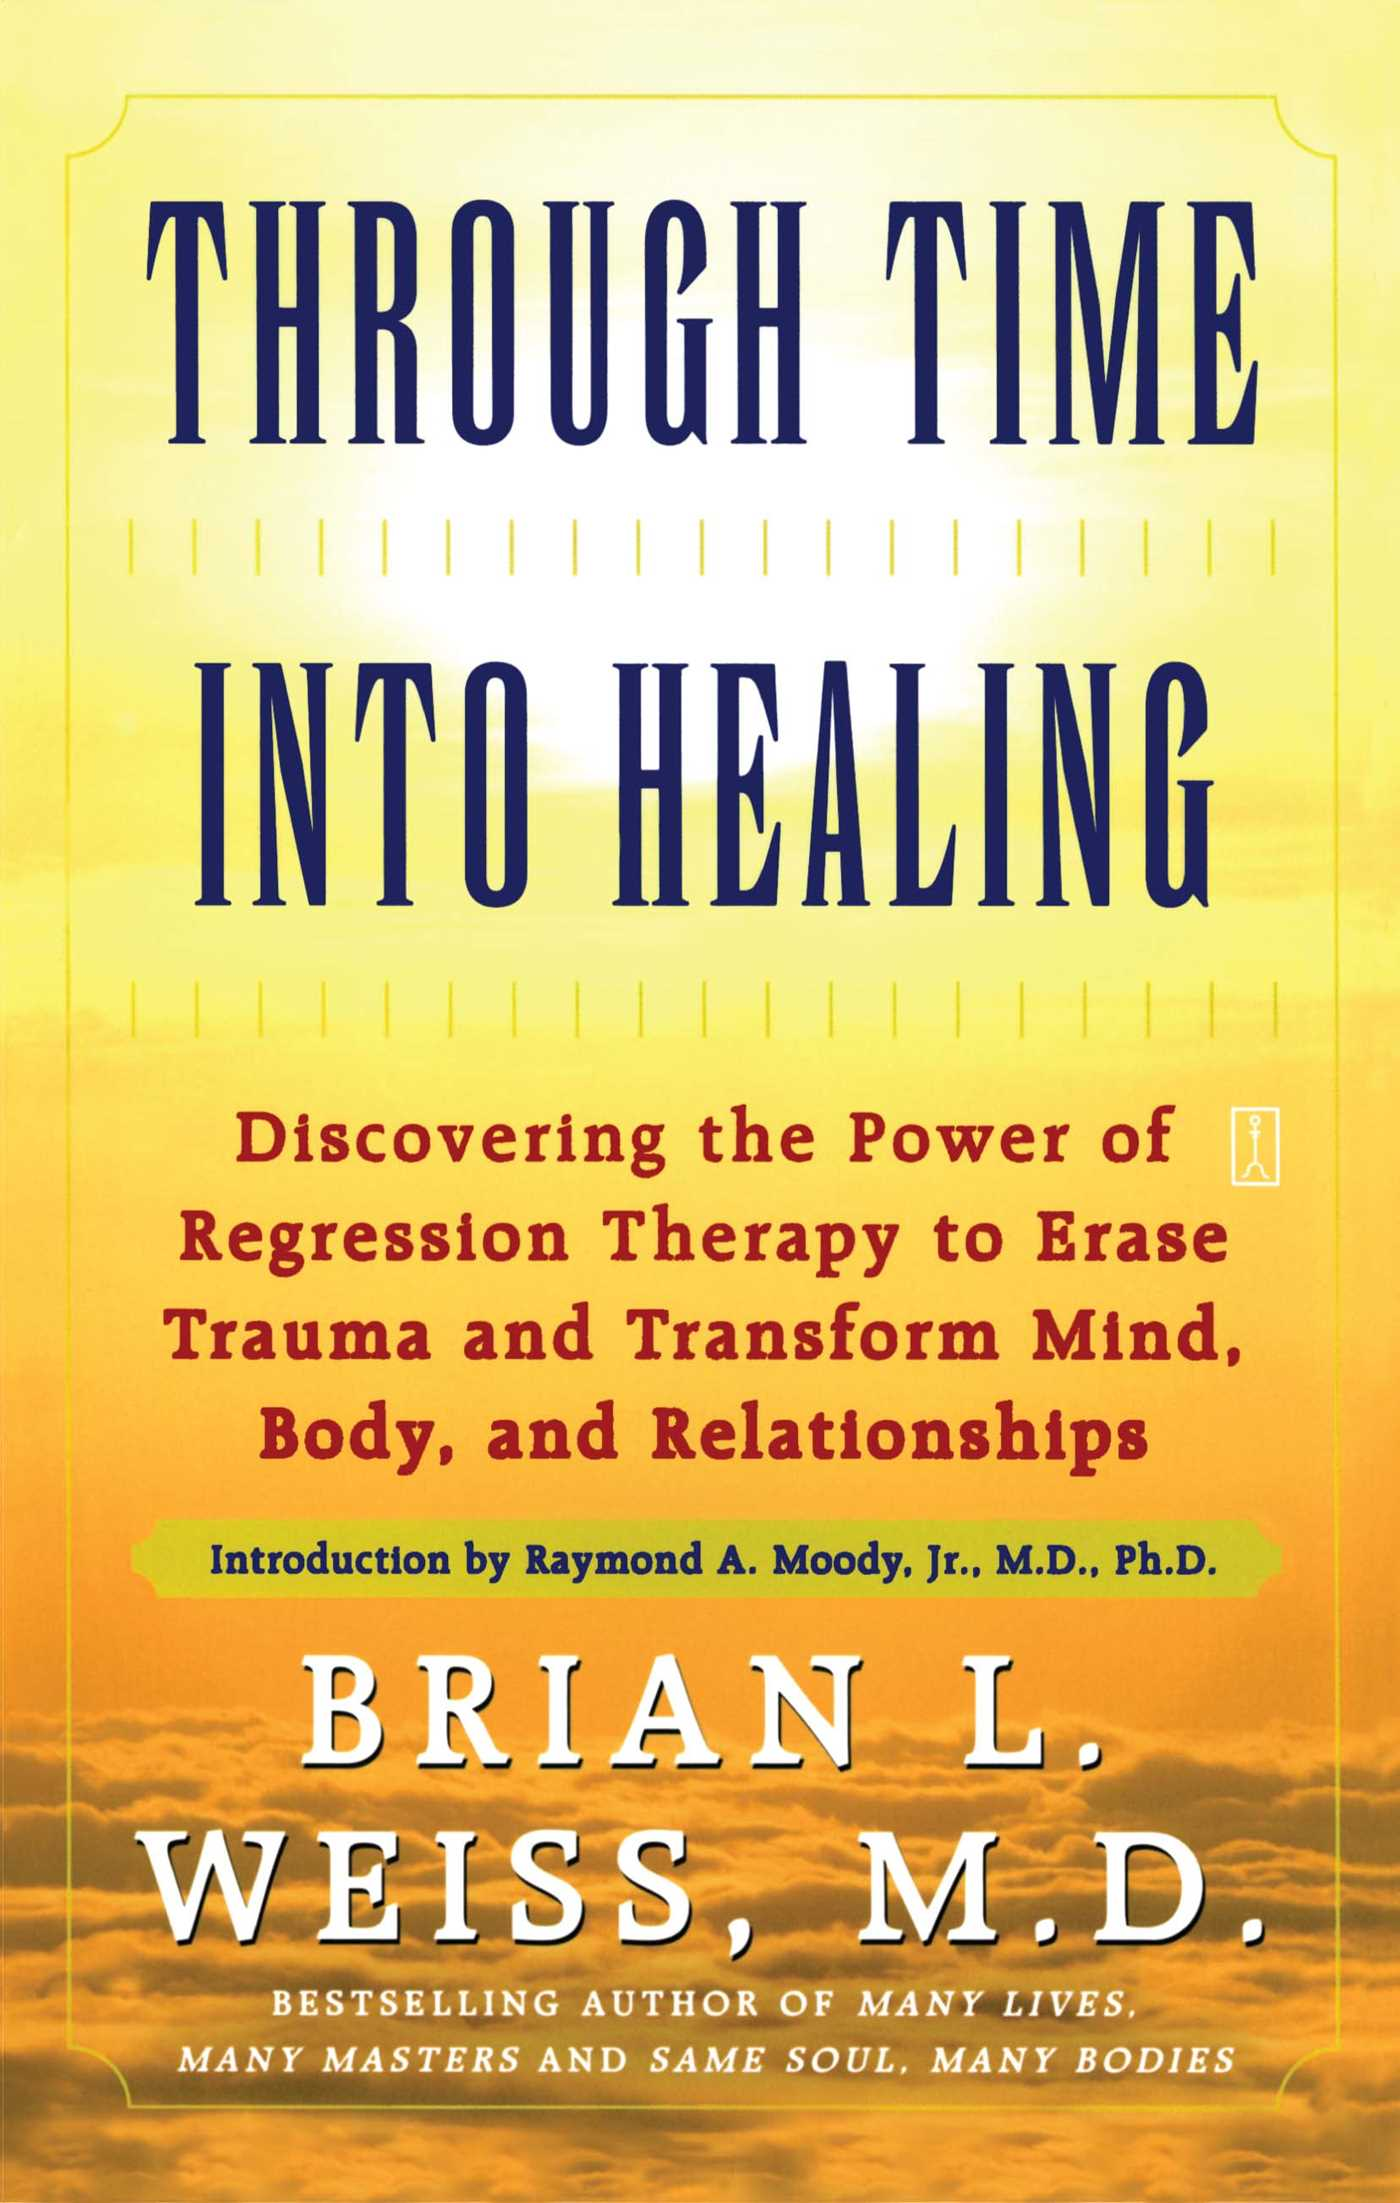 Through time into healing 9781439148044 hr